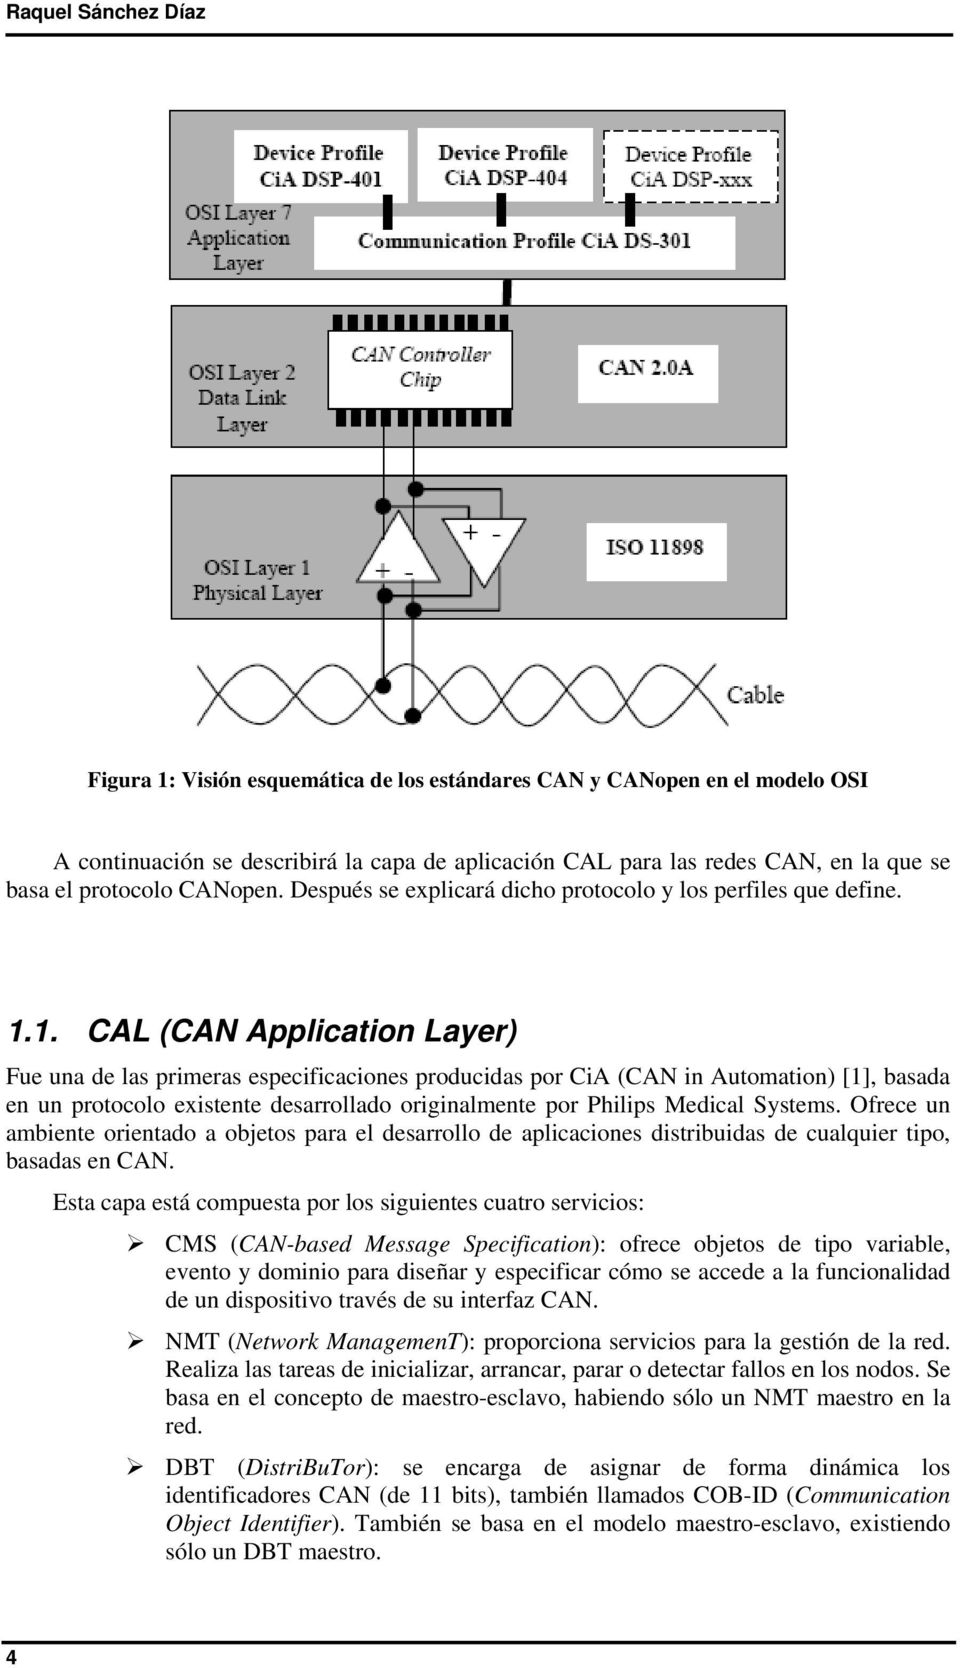 1. CAL (CAN Application Layer) Fue una de las primeras especificaciones producidas por CiA (CAN in Automation) [1], basada en un protocolo existente desarrollado originalmente por Philips Medical